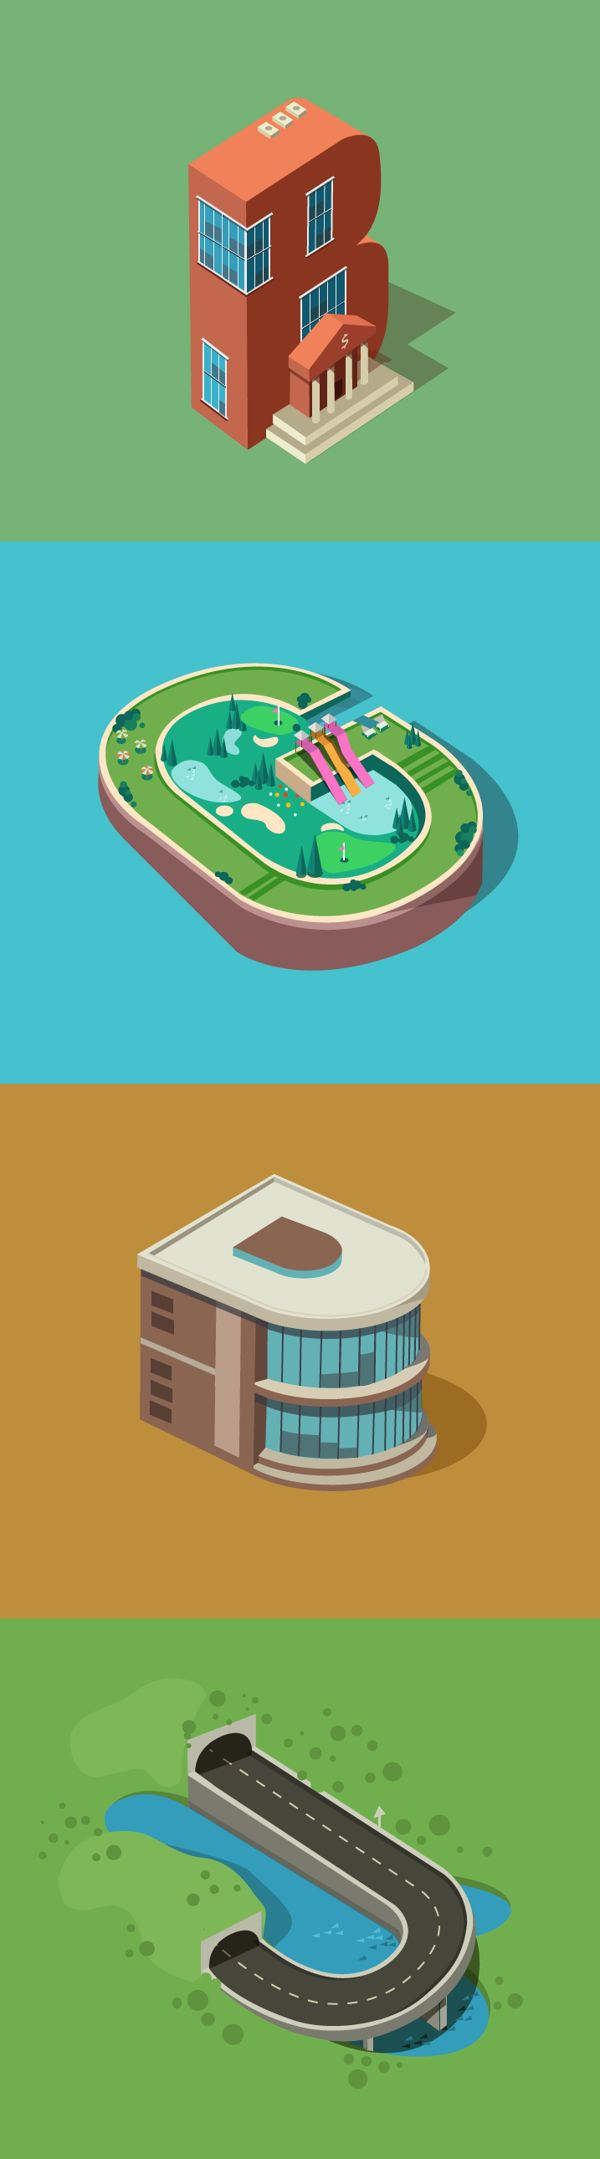 Banks, tunnels, government, parks icons design